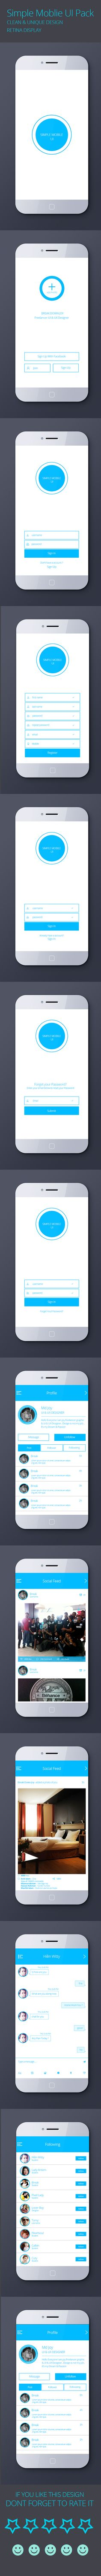 Simple_Flat_Mobile_UI_Design_Free_PSD GraphicRiver